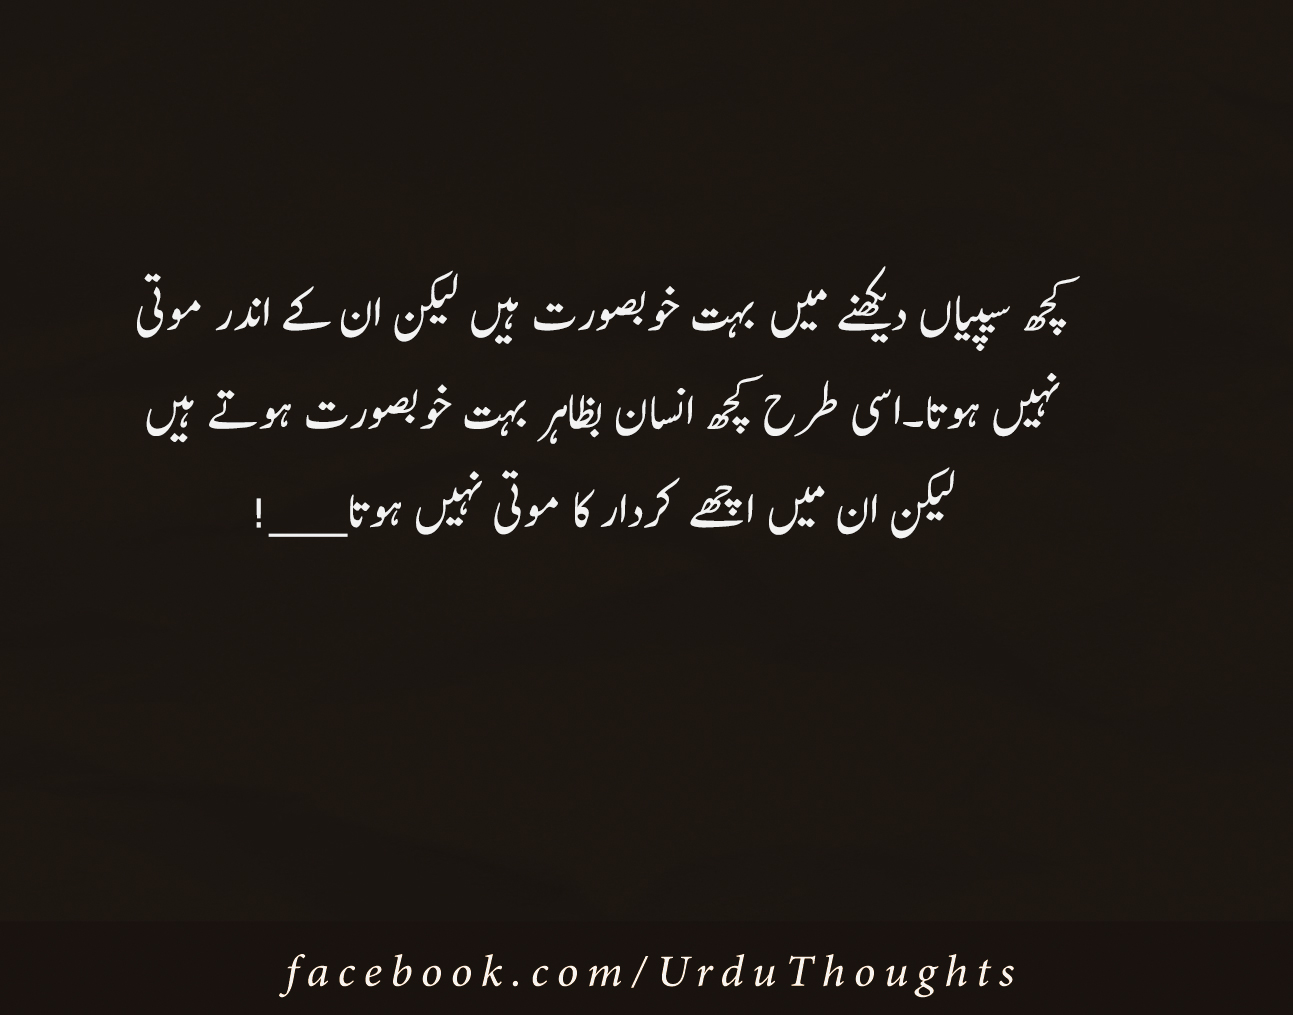 12 images about beautiful quotes thoughts in urdu urdu for Bano qudsia sayings